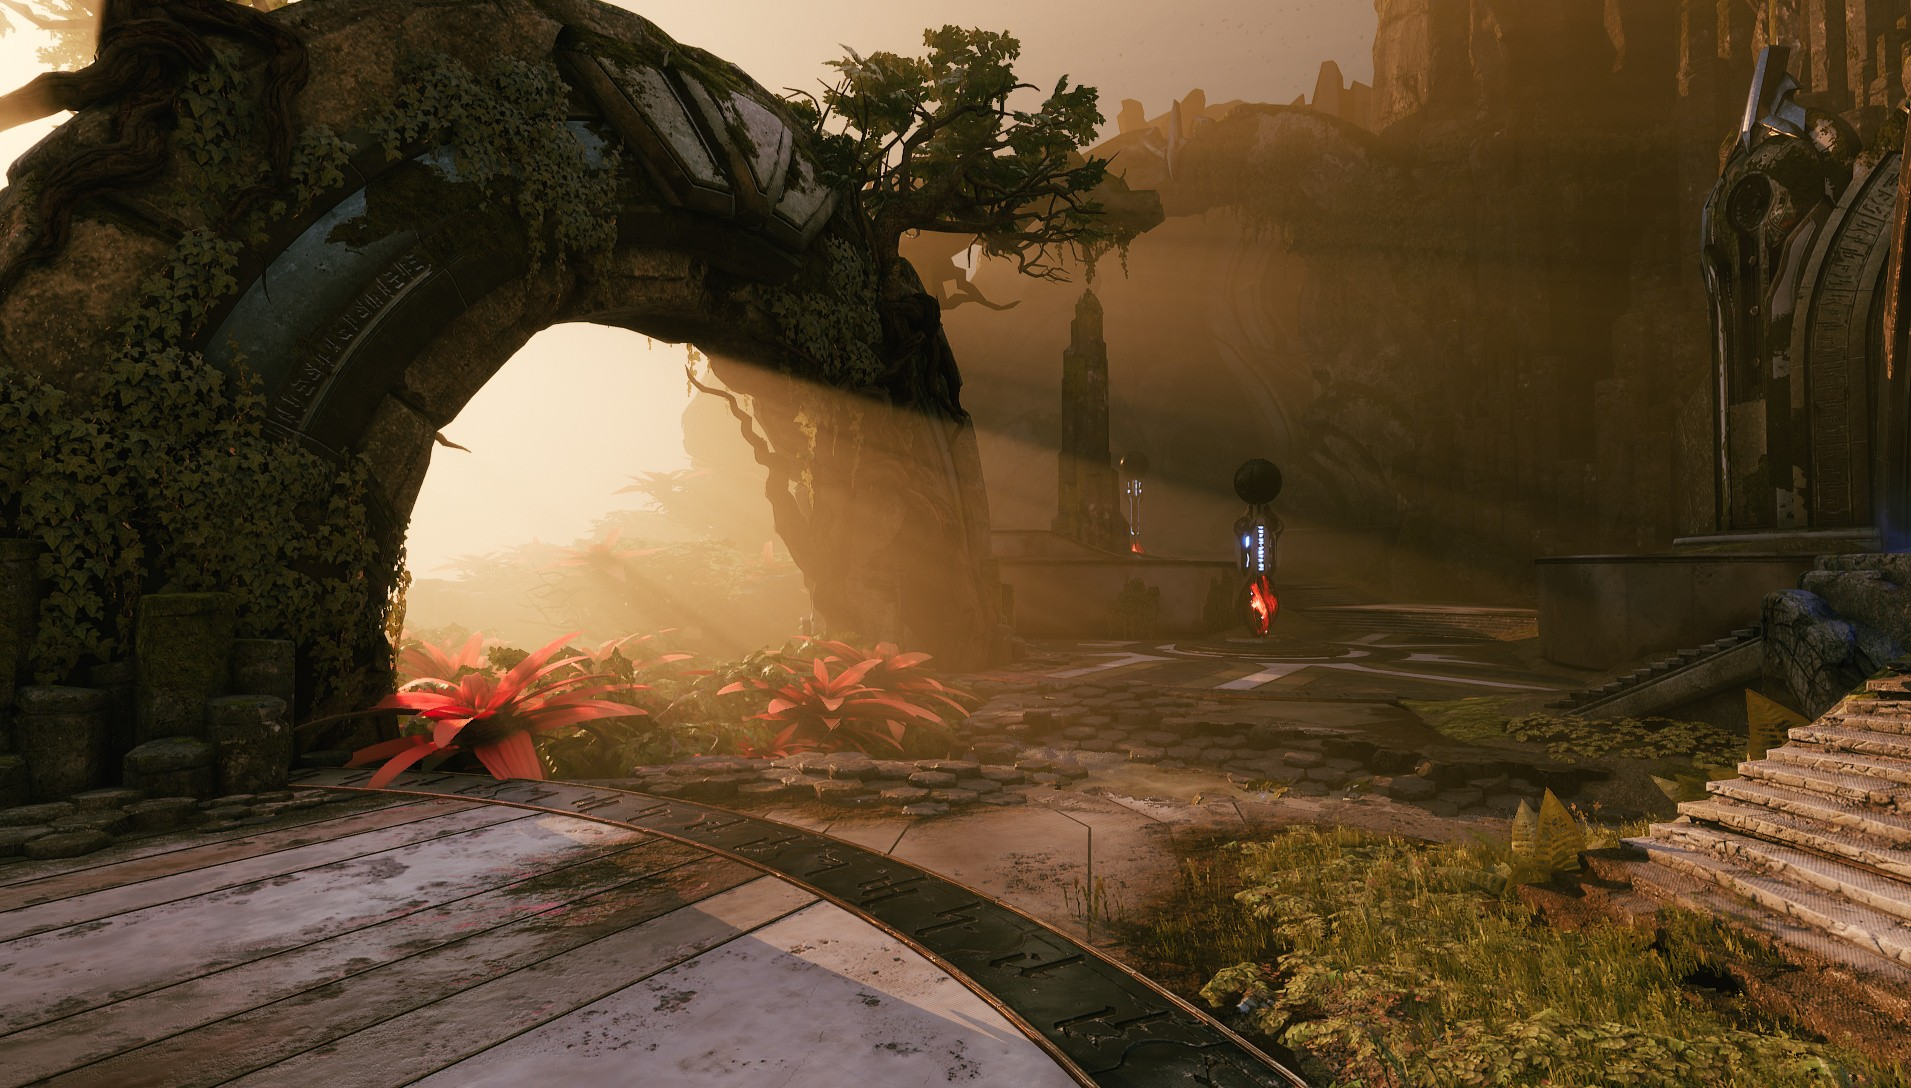 Unreal Engine 4 16 Game Engine Launches with More than 160 Improvements